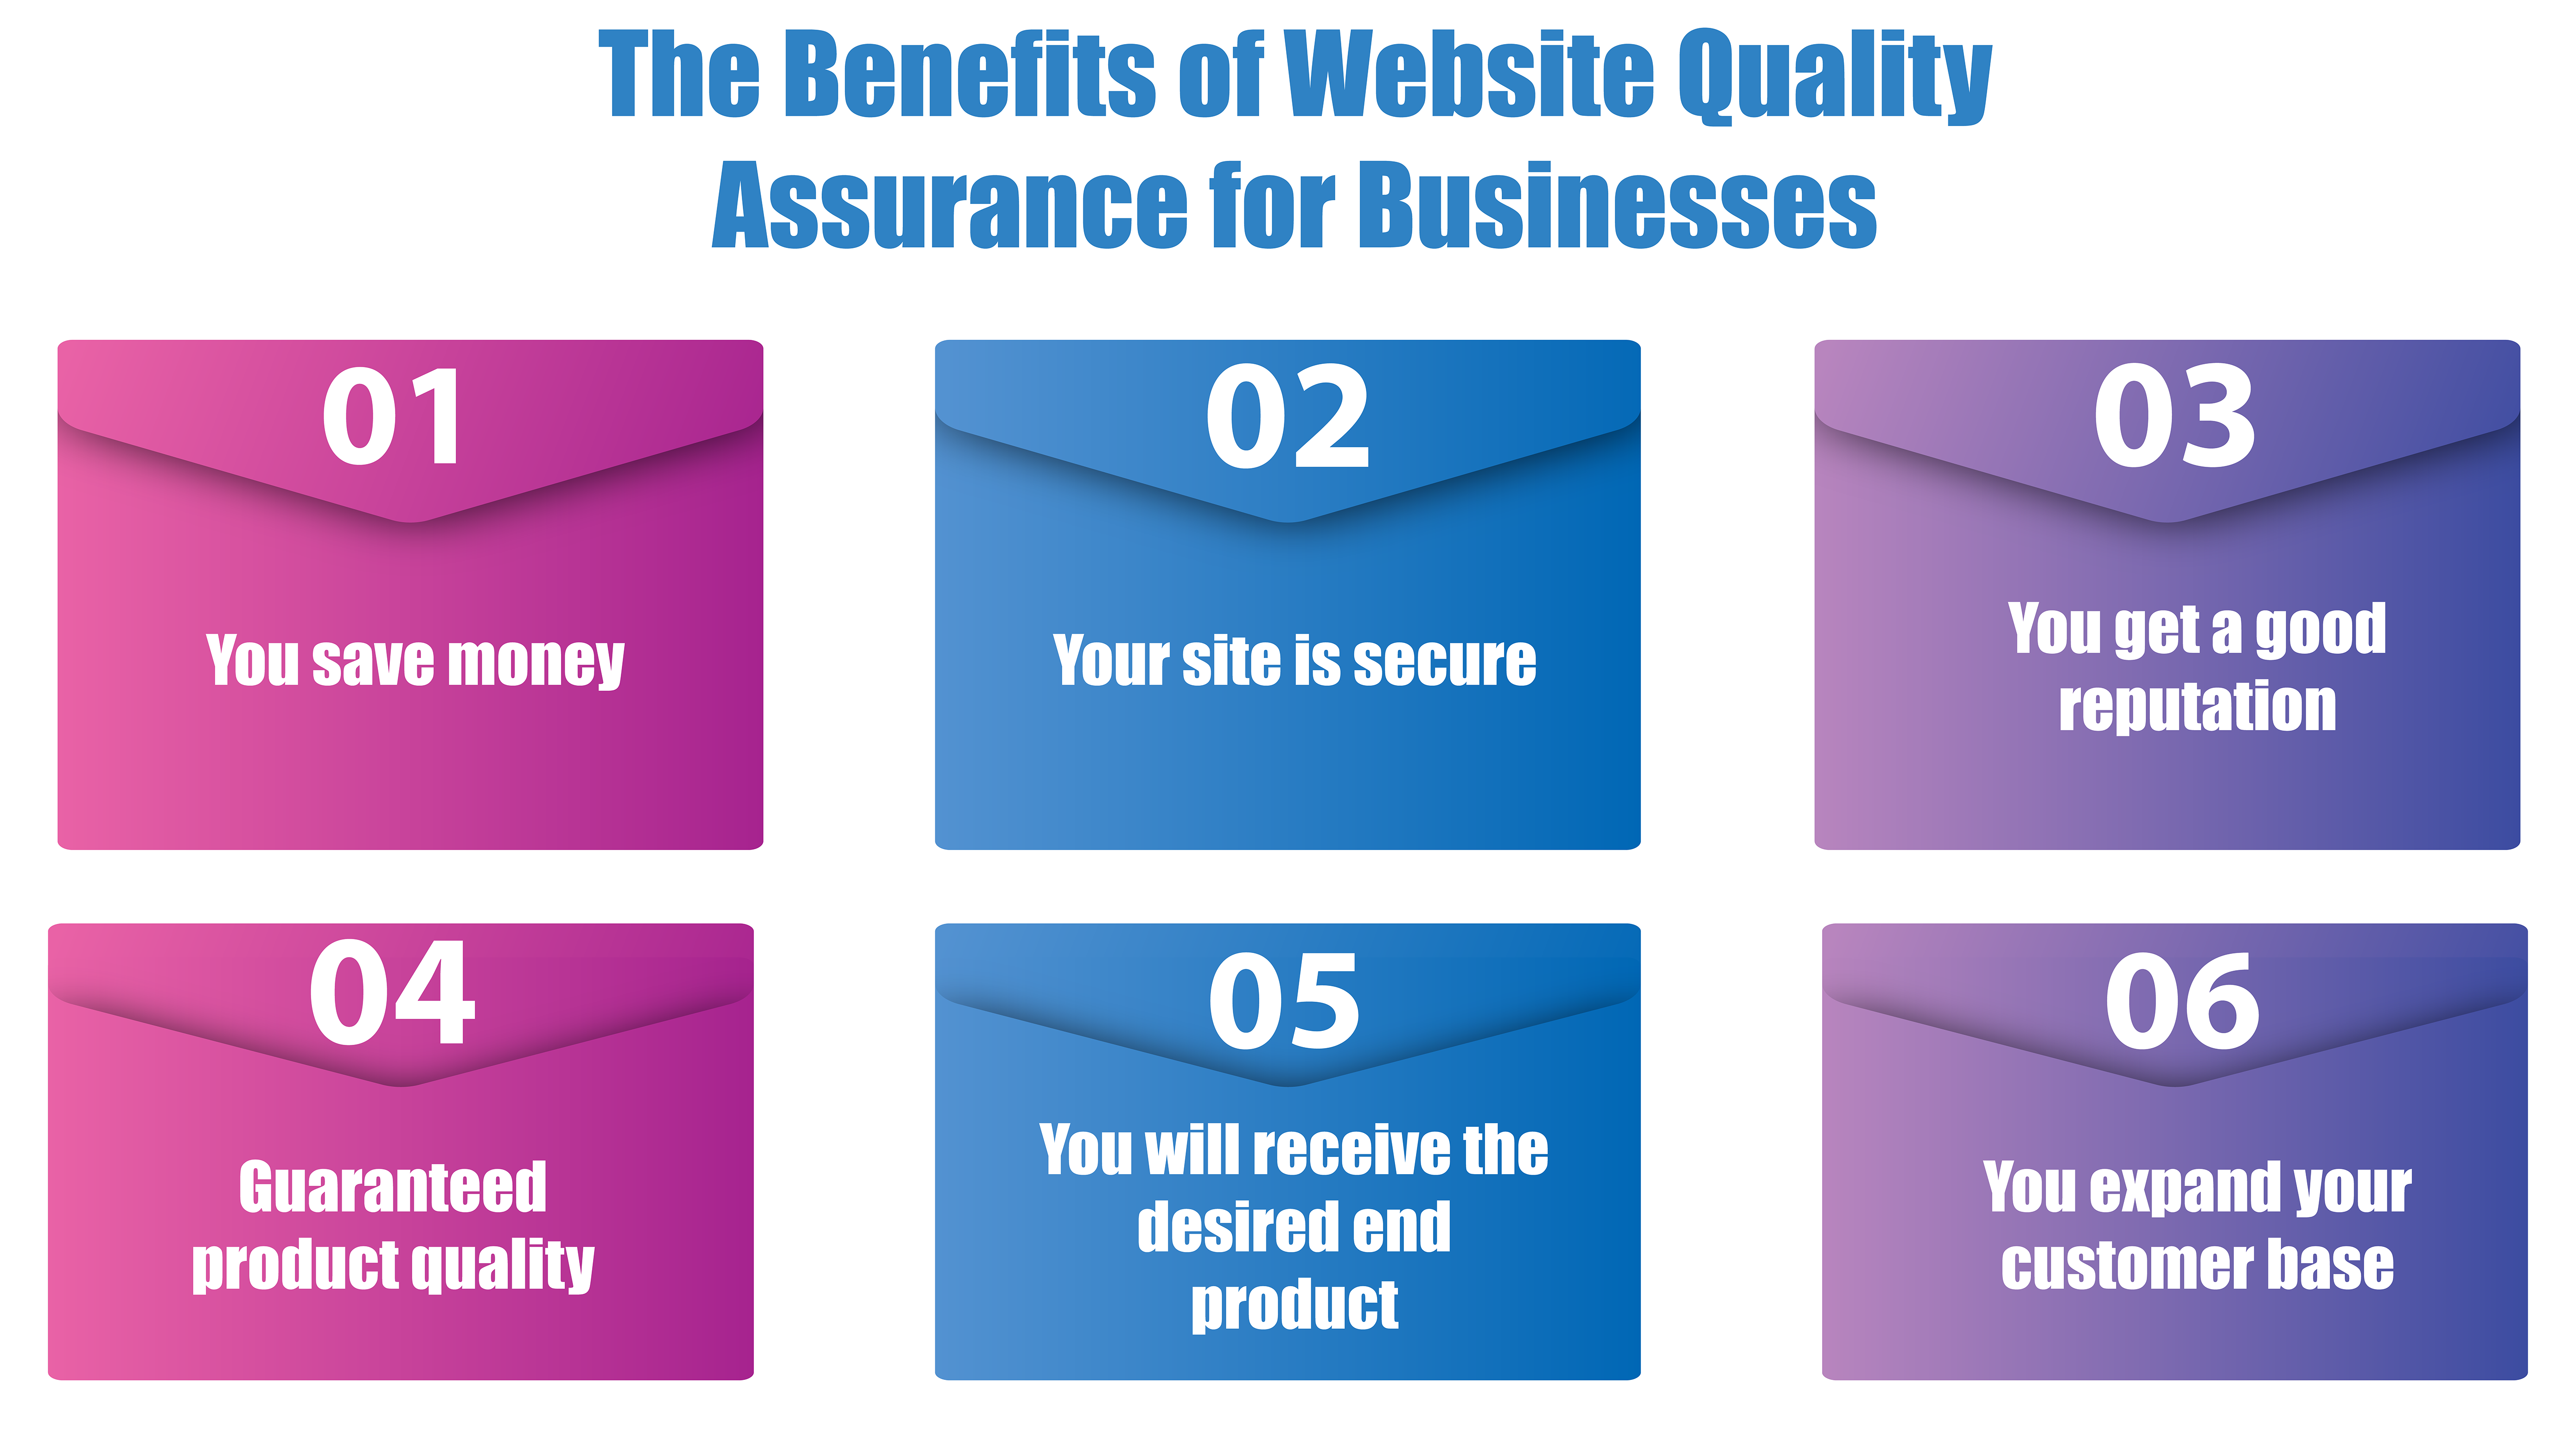 The Benefits of Website Quality Assurance for Businesses